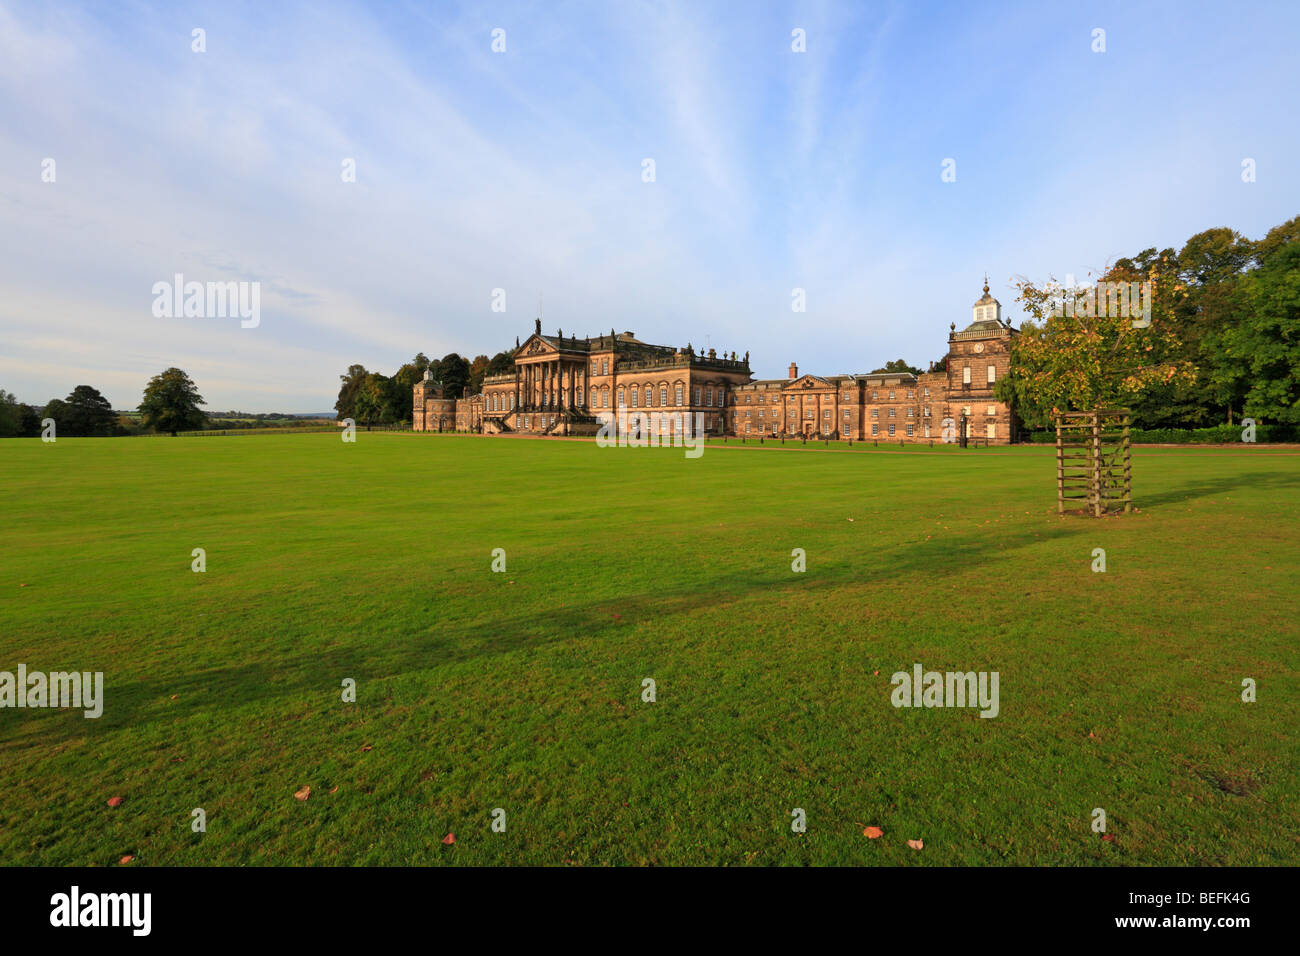 East frontage of Wentworth Woodhouse, Wentworth, Rotherham, South Yorkshire, England, UK. Stock Photo